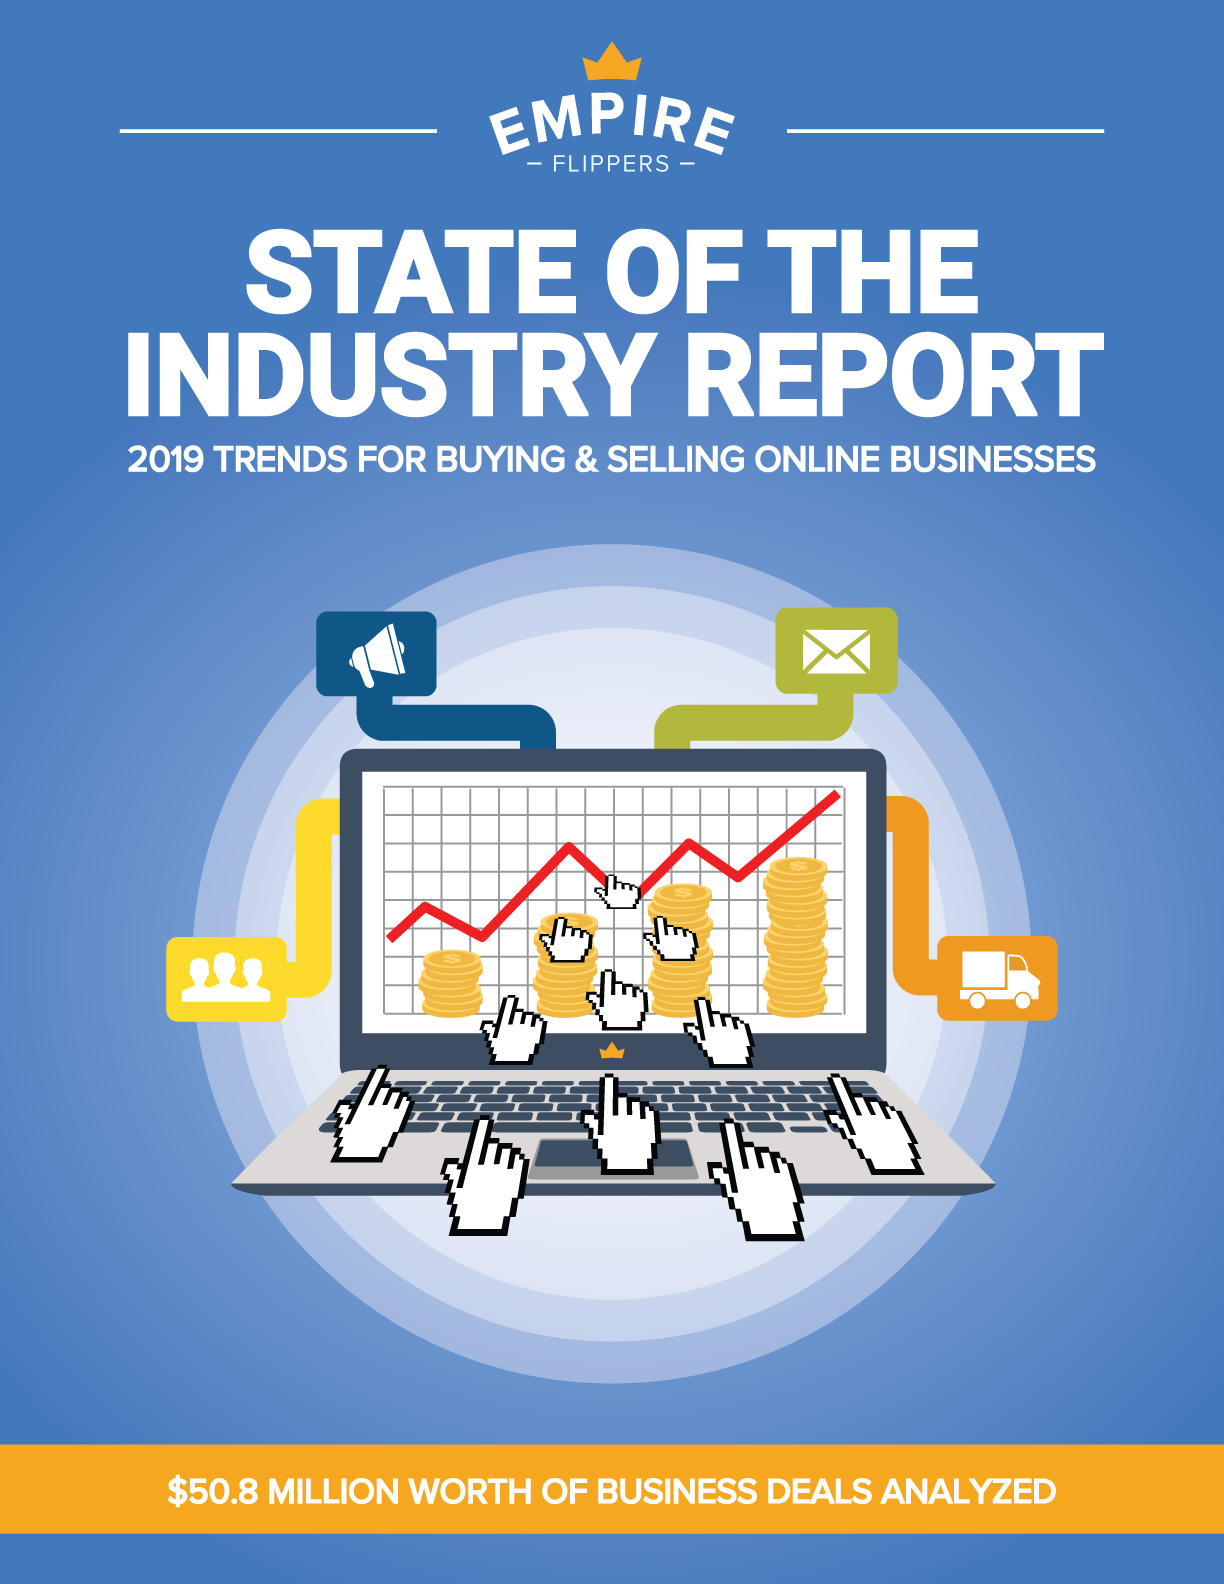 Empire-Flippers-State-of-the-Industry-Report-2019